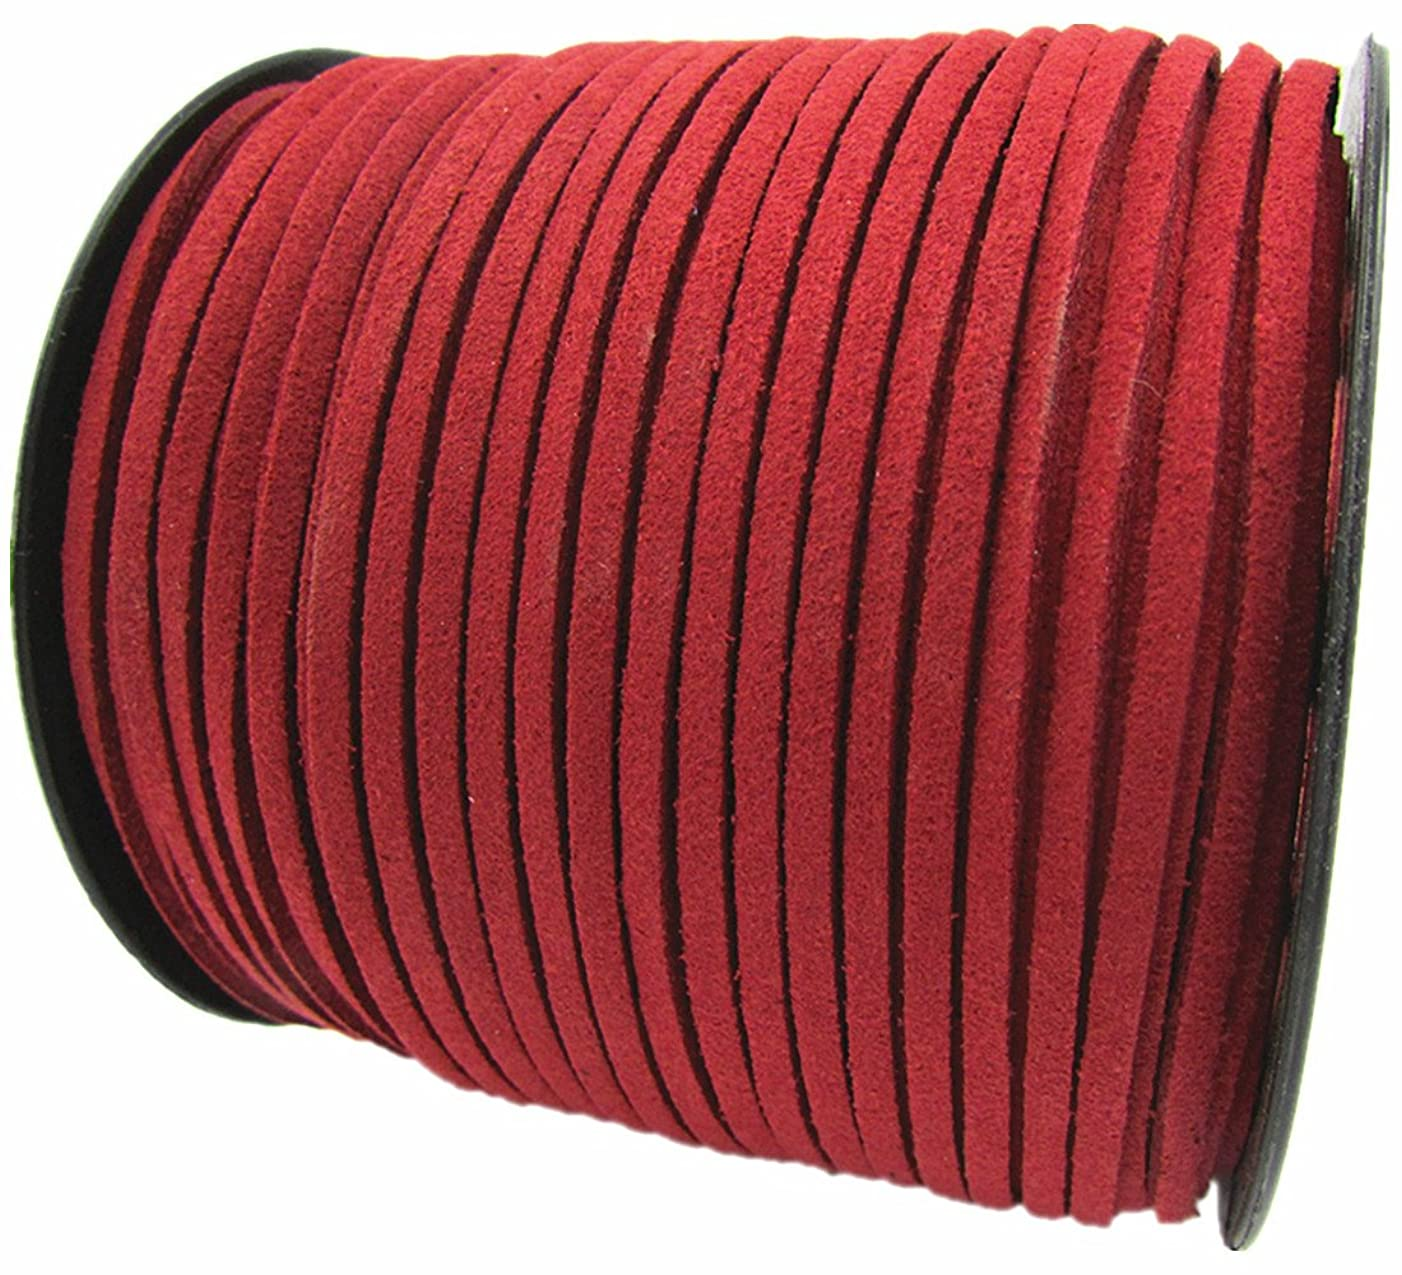 100 Yards Jewelry Making Flat Micro Fiber Lace Faux Suede Leather Cord (Red)